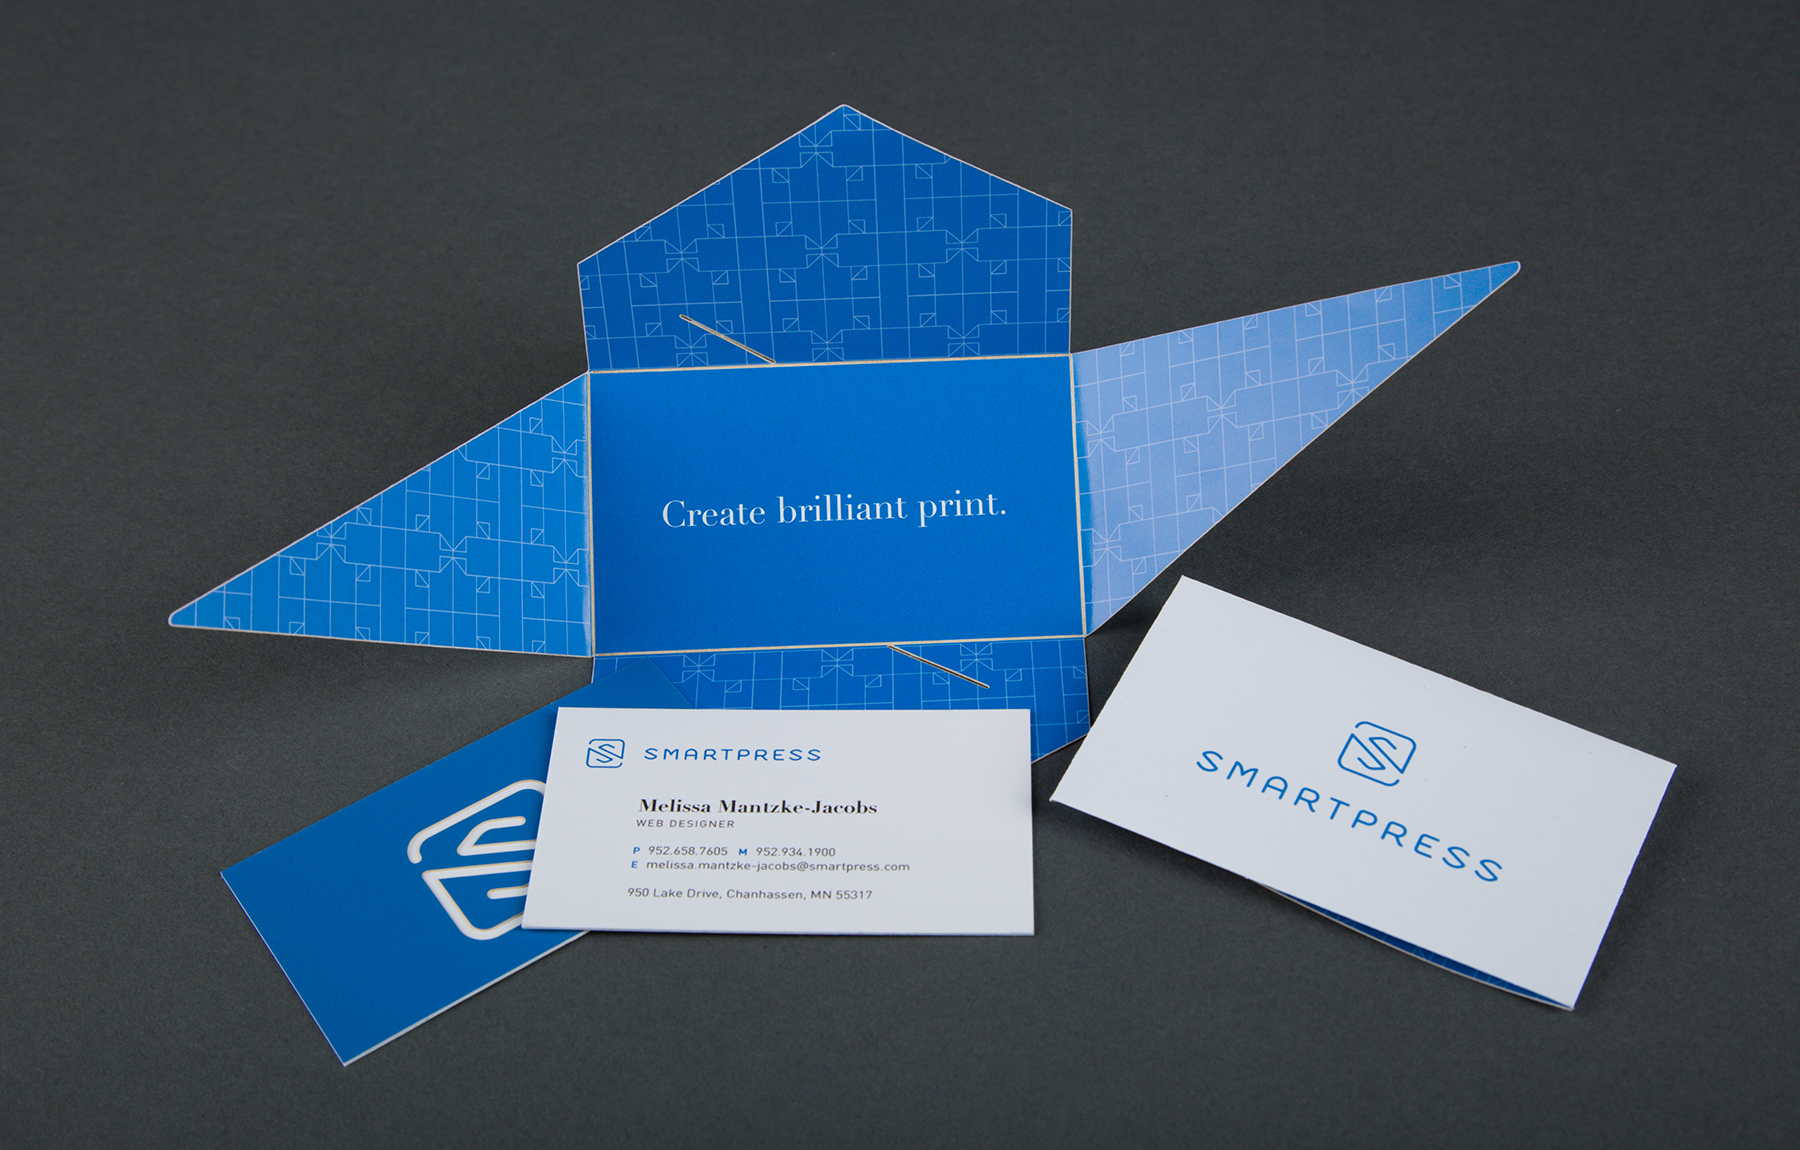 Smartpress Business Cards  Digital Laser Cut Wrapper and Double Layer Digital Laser Cut Mounted Business Card  Concep & Design